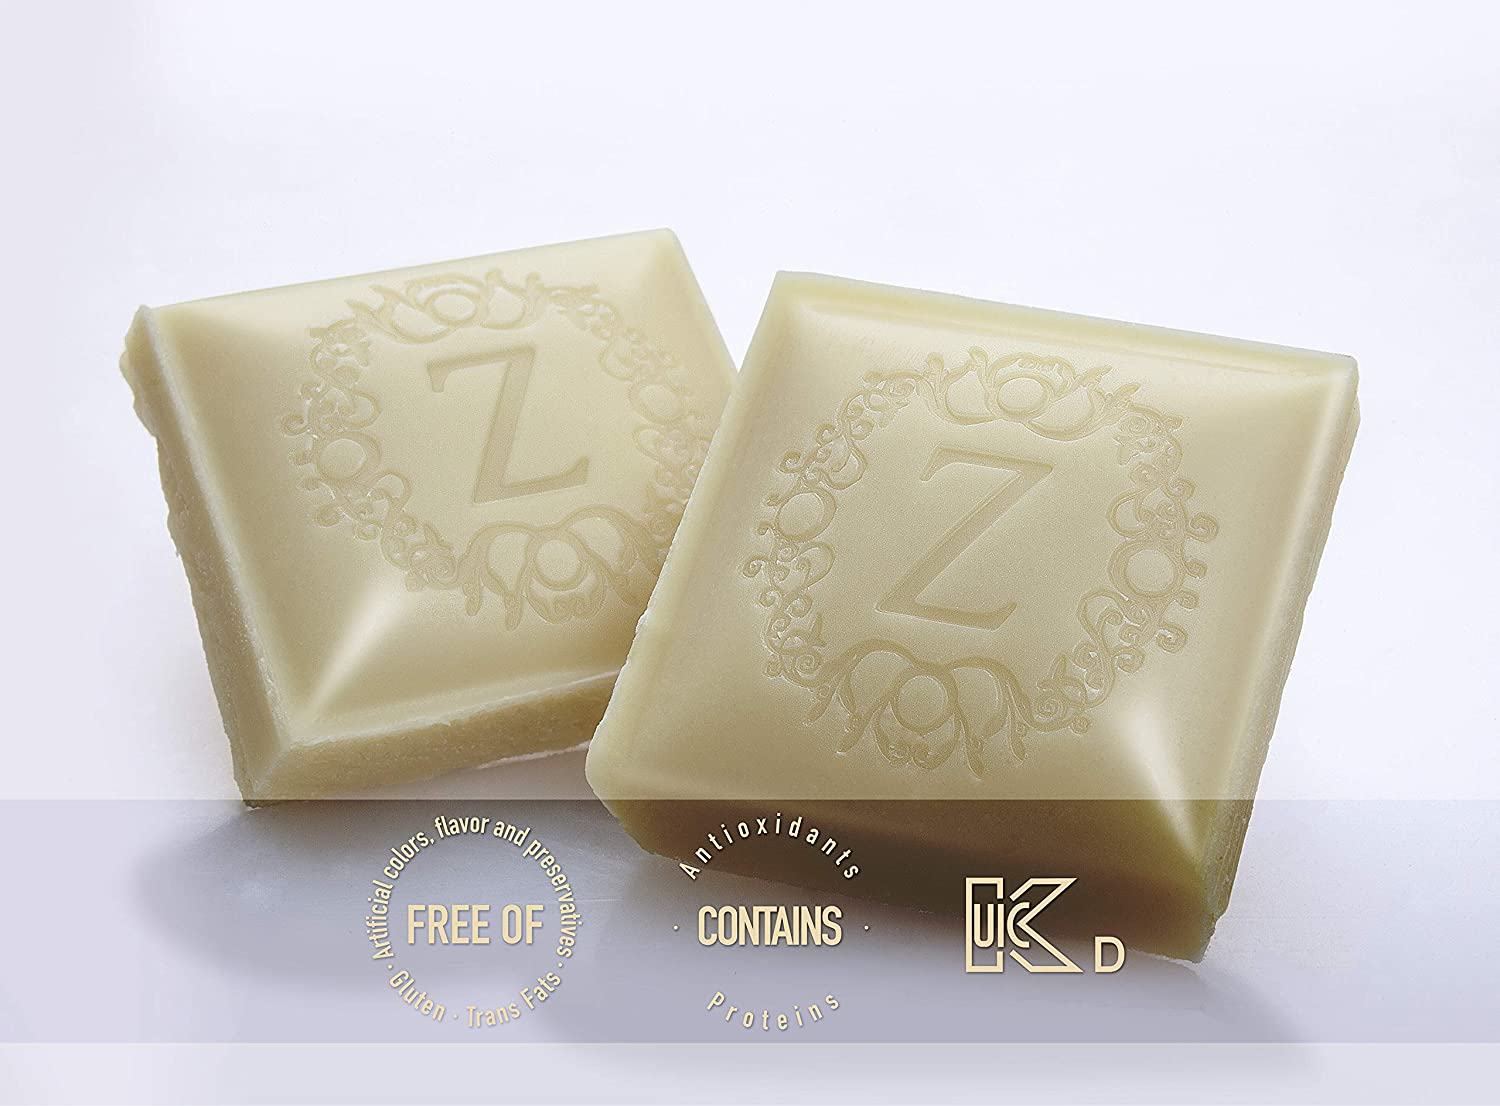 1.76Oz WHITE CHOCOLATE 12-Pack - 31.5% Extra-Fine Cacao - Gluten-free, Certified Kosher...